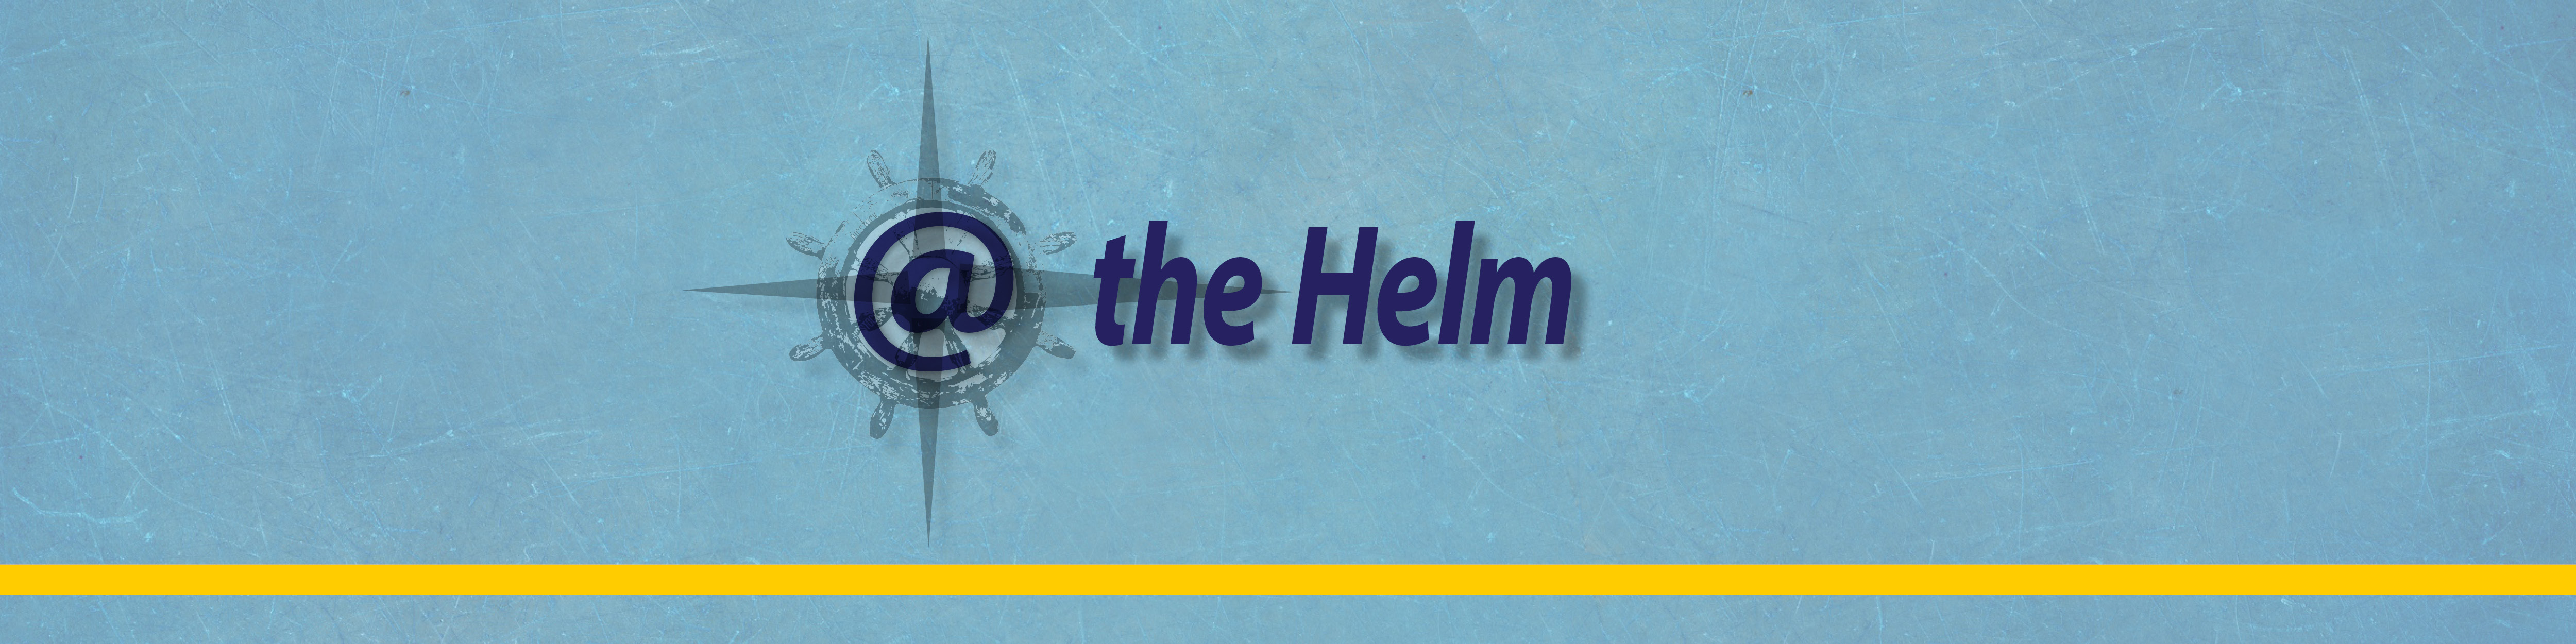 At-the-Helm-banner